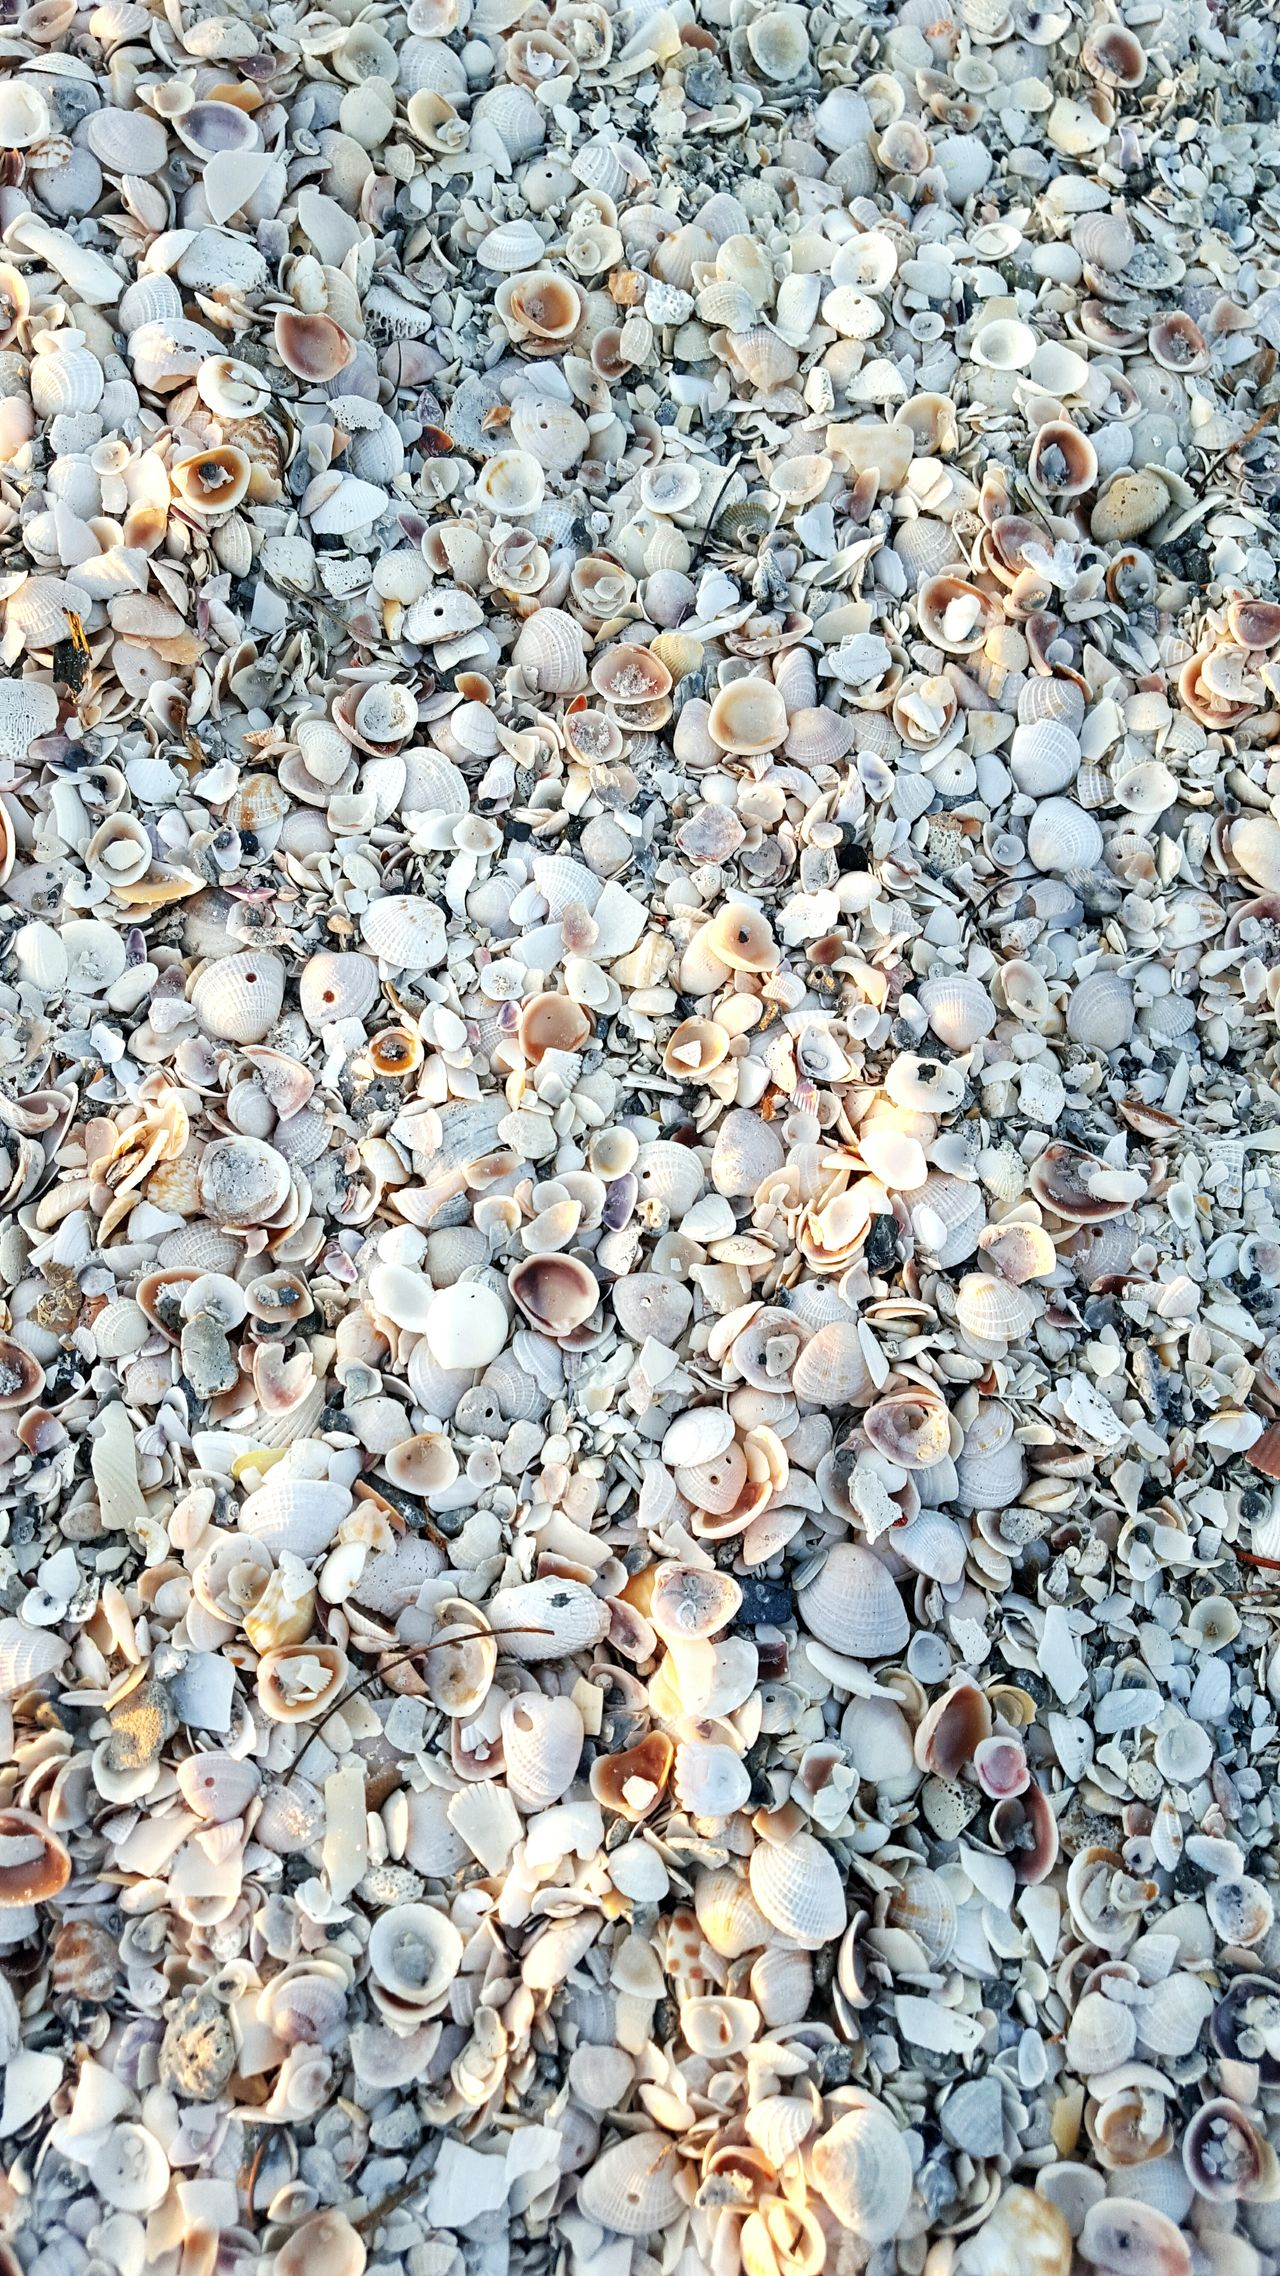 She sells seashells on the seashore.... Shells Beach Shells Sand Broken Shells Nature Gulf Of Mexico Saltlife Seashells Florida